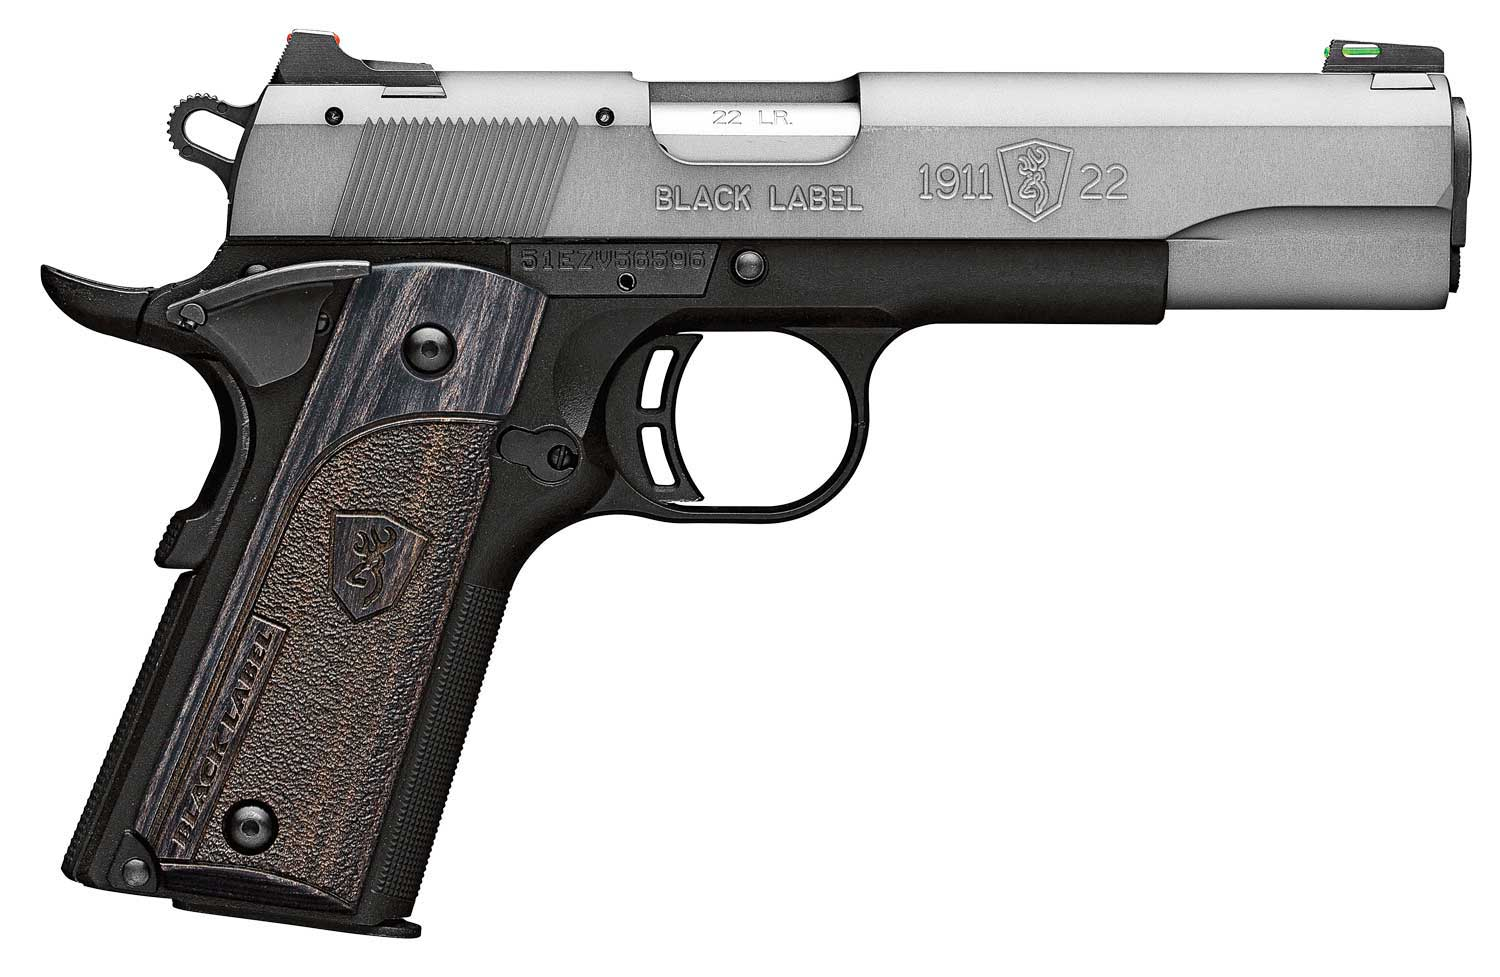 Browning Black Label pistol right profile